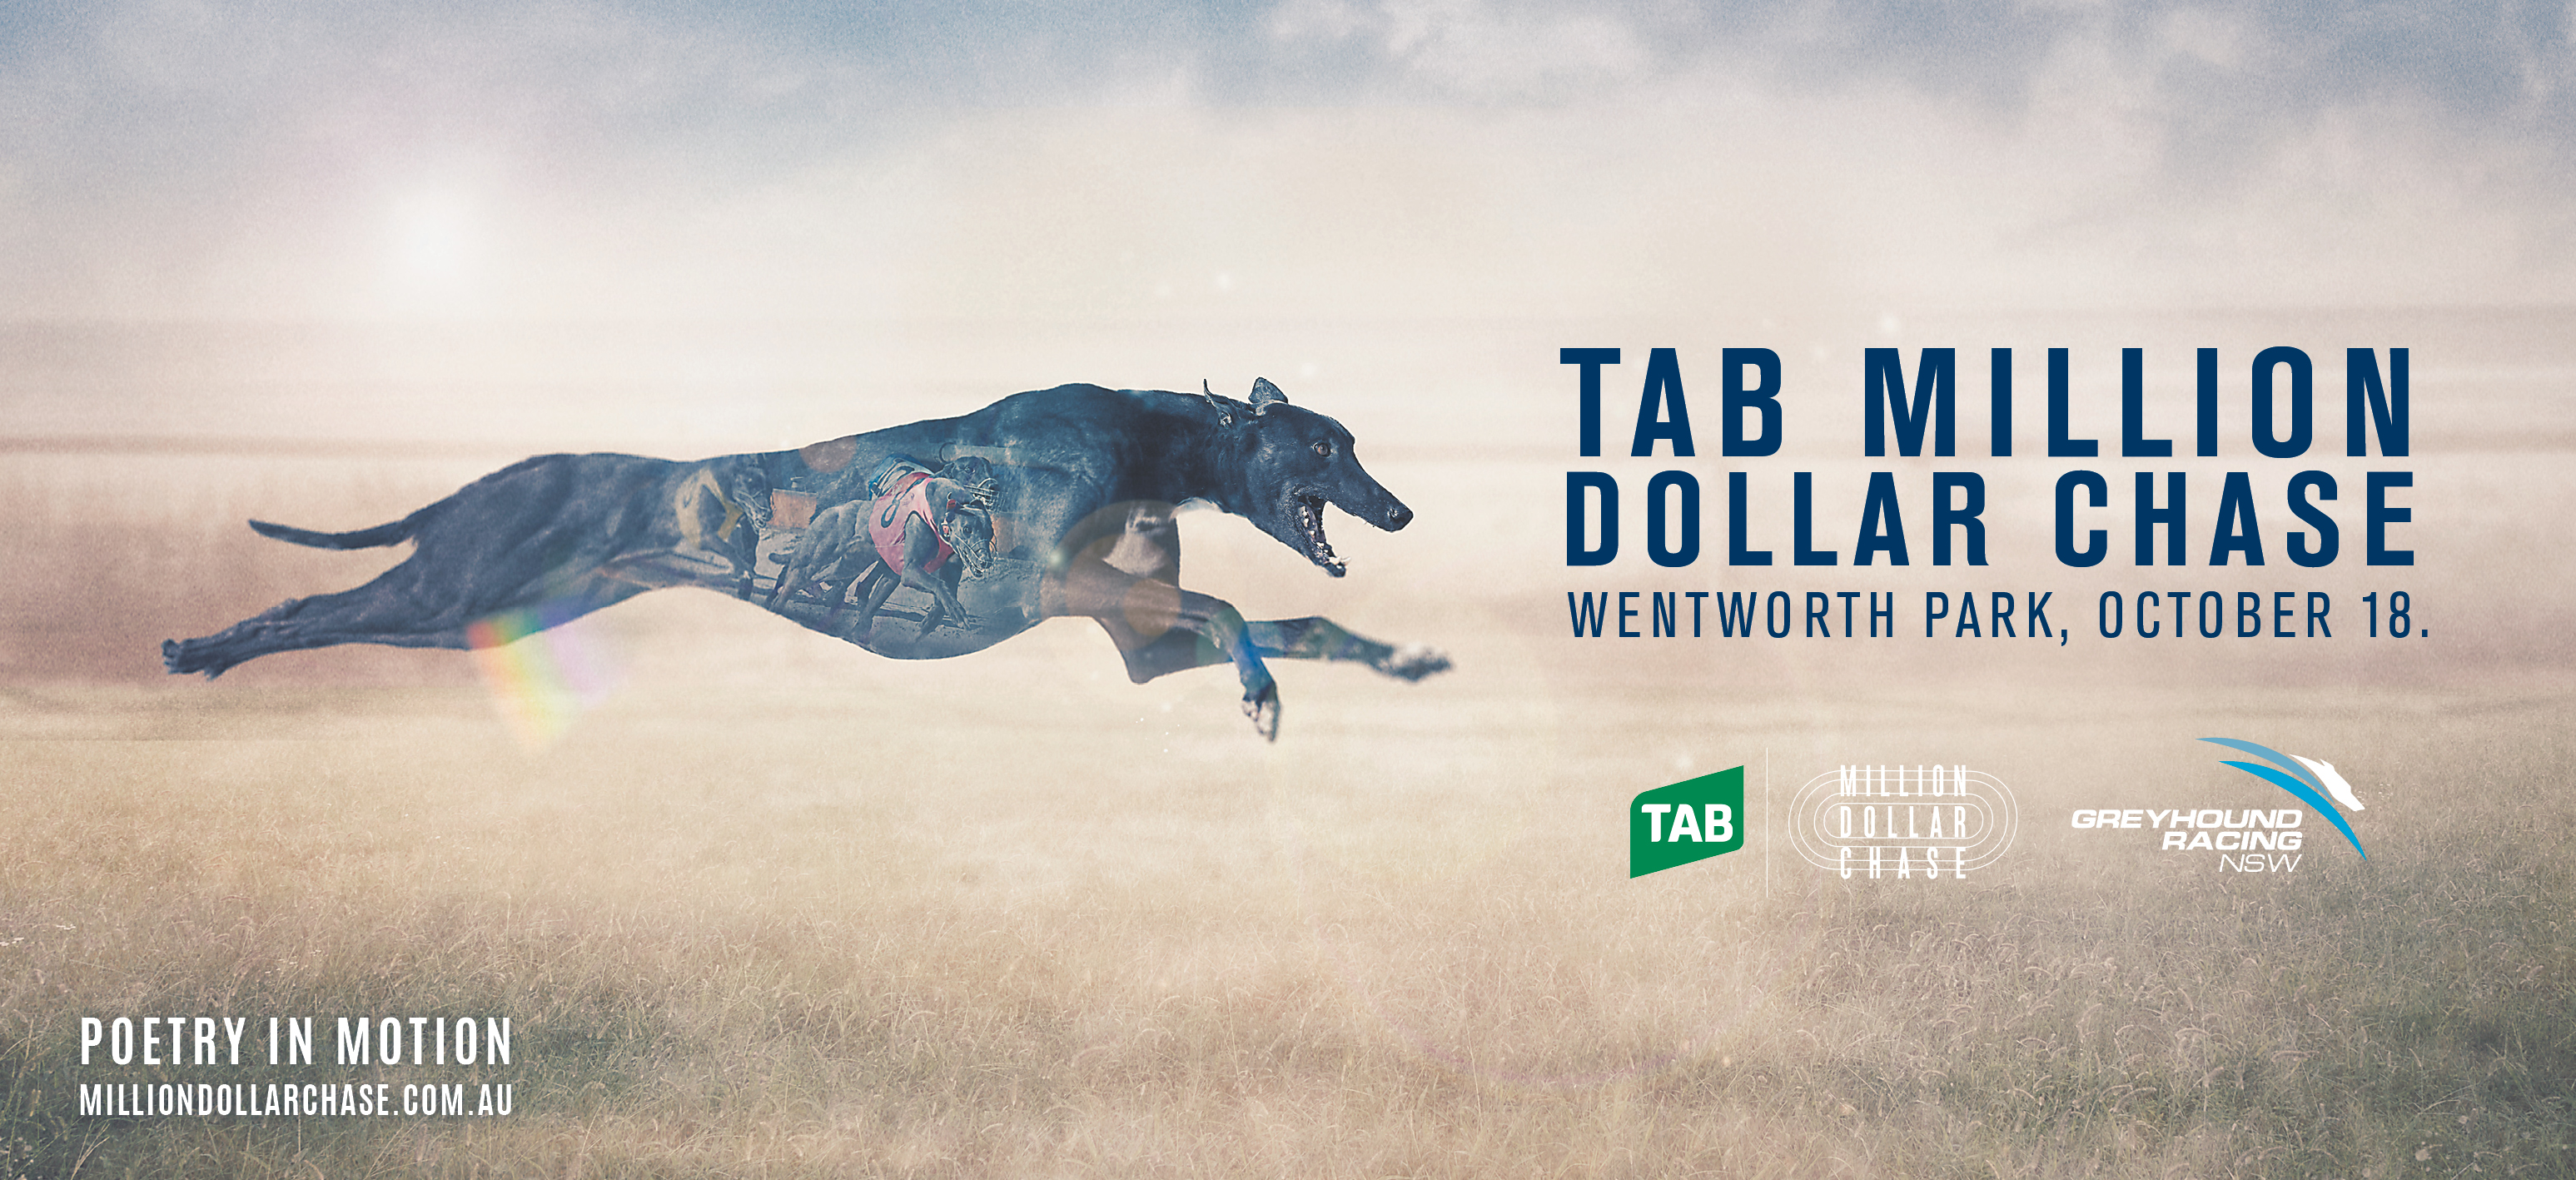 Greyhound Racing NSW unveils new campaign for the TAB Million Dollar Chase via Bastion Banjo